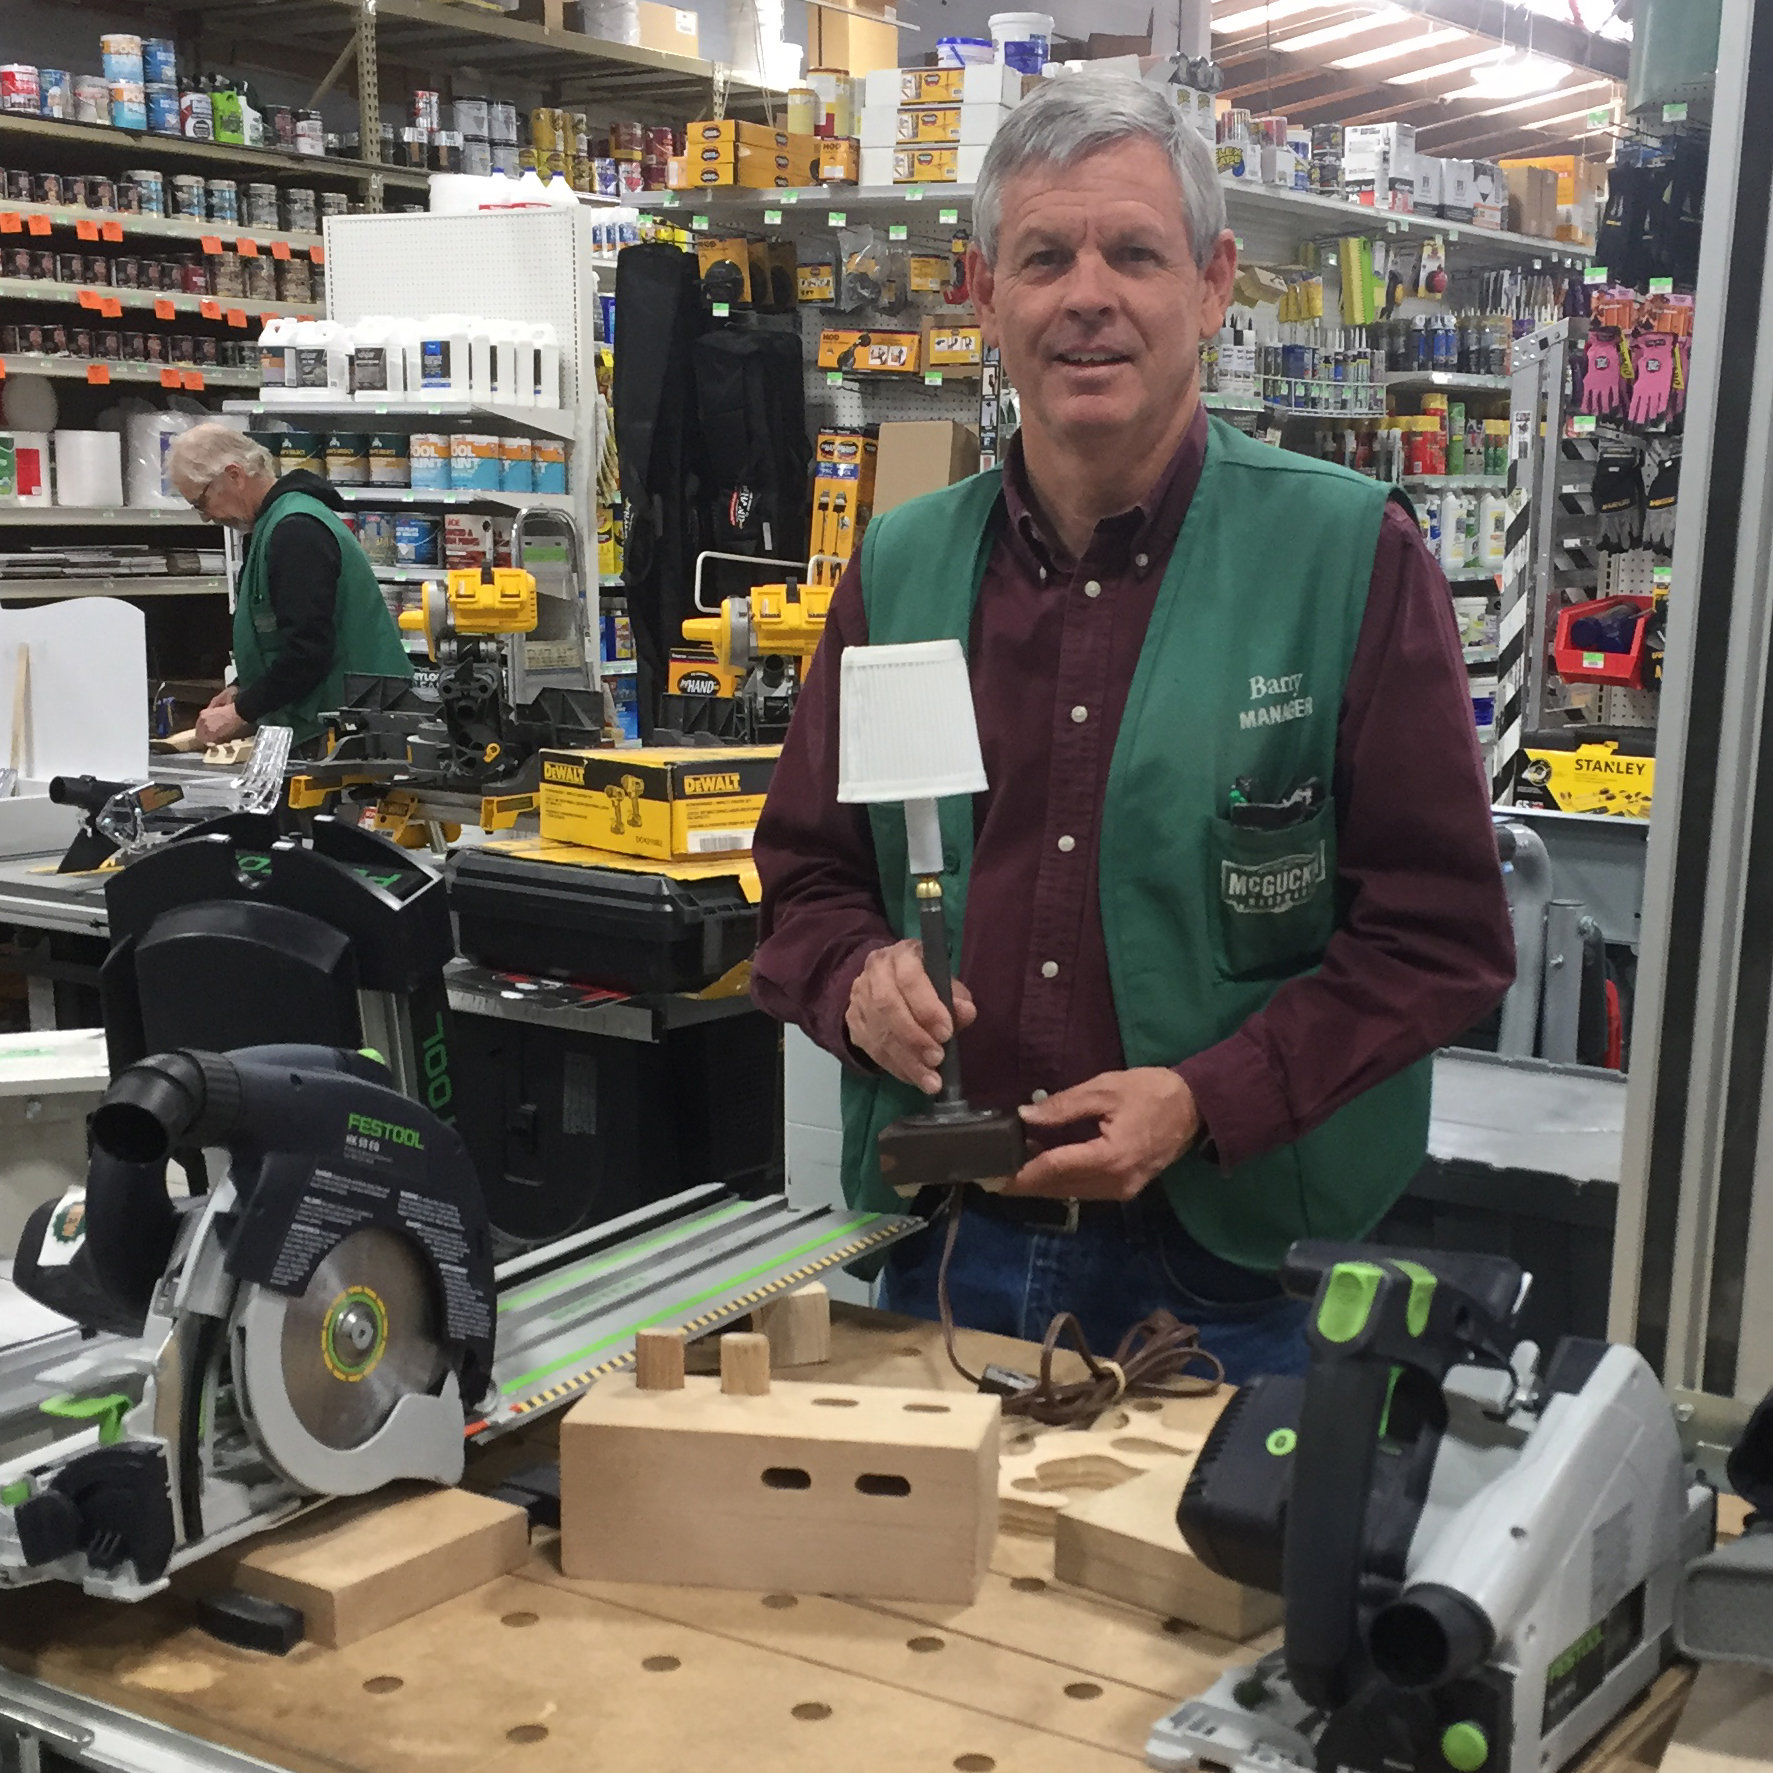 Barry Hight with Workshop Lamp